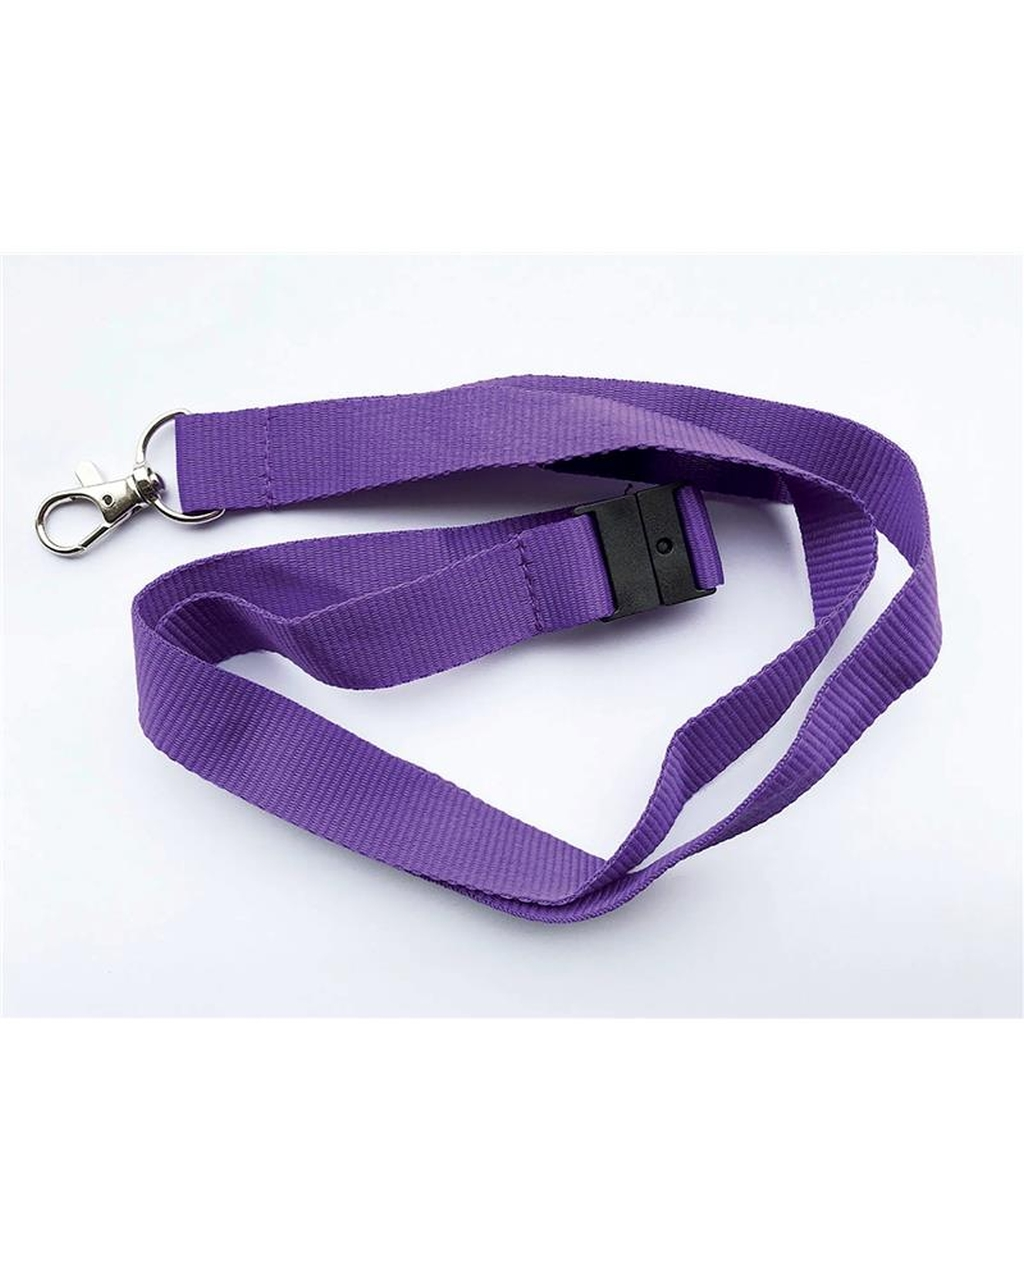 20Mm Lanyards Plain Purplepack Of 100